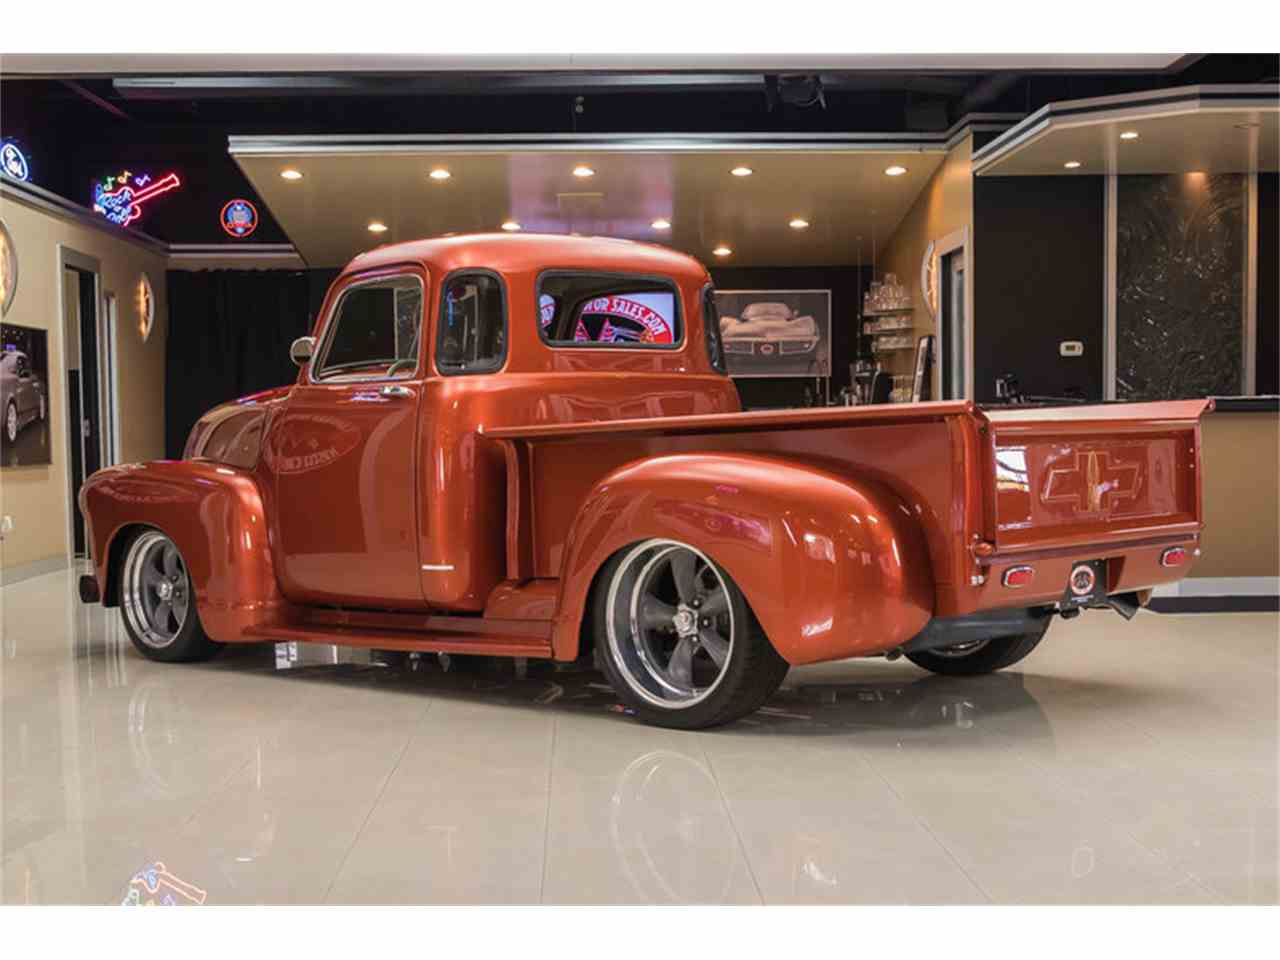 1948 chevrolet 3100 5 window pickup for sale classiccars for 1948 5 window chevy truck sale